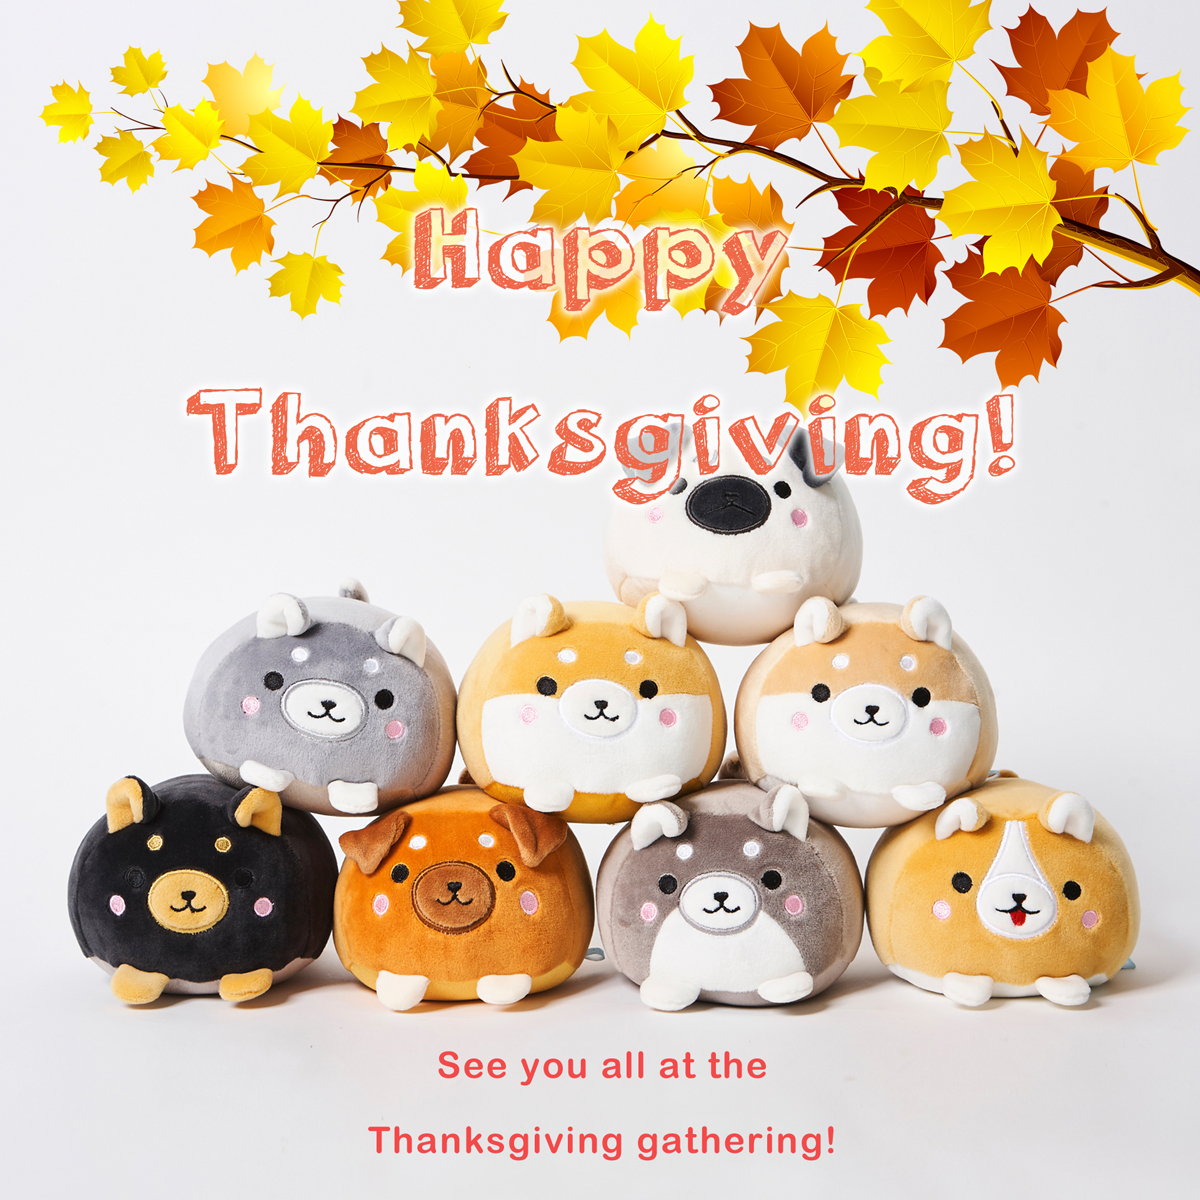 2017 Thanksgiving Greeting - Marshmallow Dogs -  DOWNLOAD